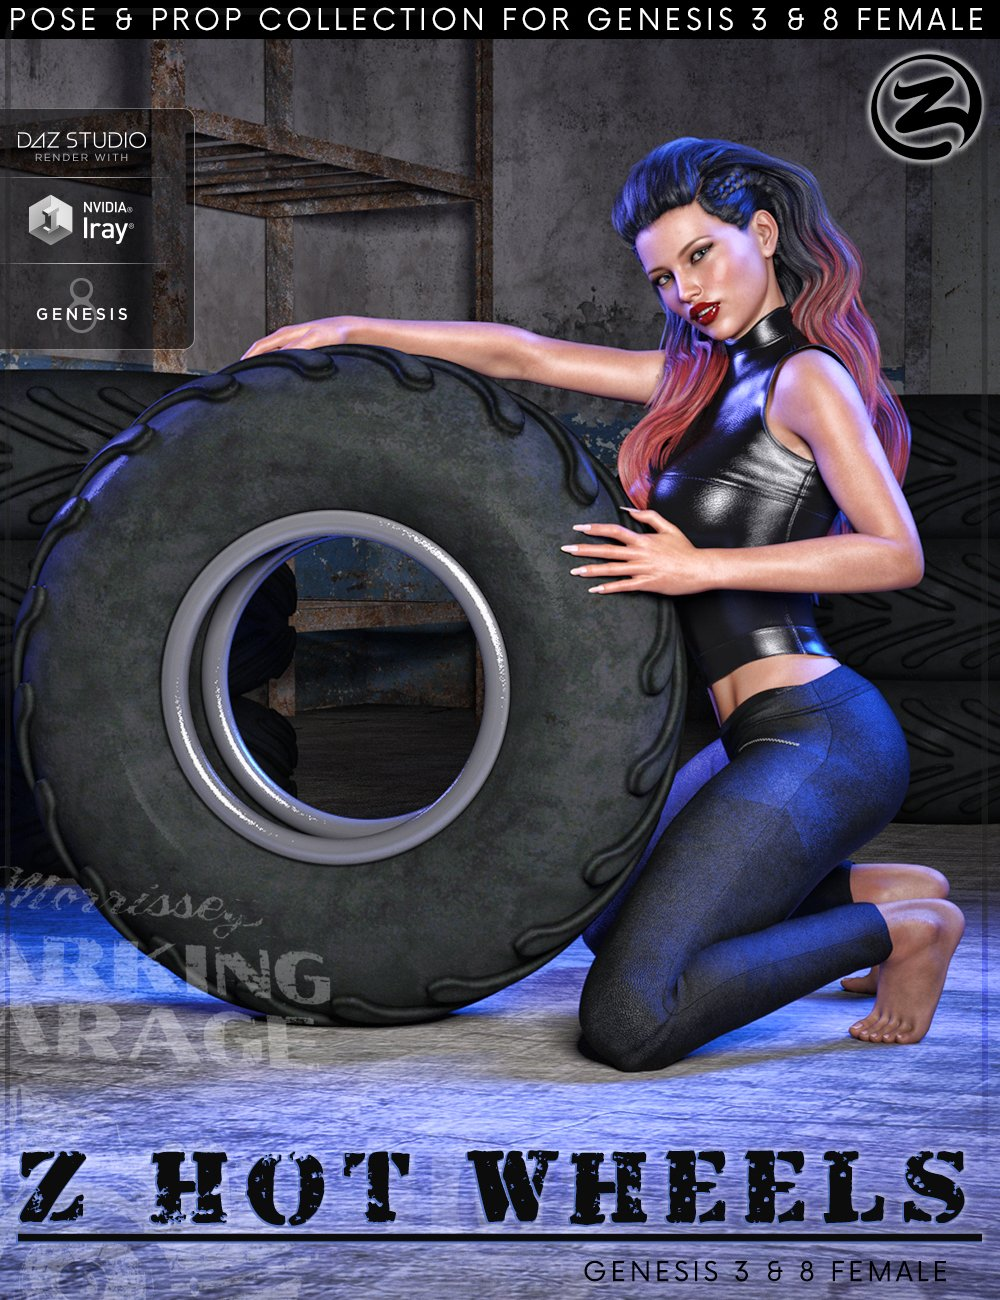 Z Hot Wheels - Props and Poses for Genesis 3 and 8 Female by: Zeddicuss, 3D Models by Daz 3D